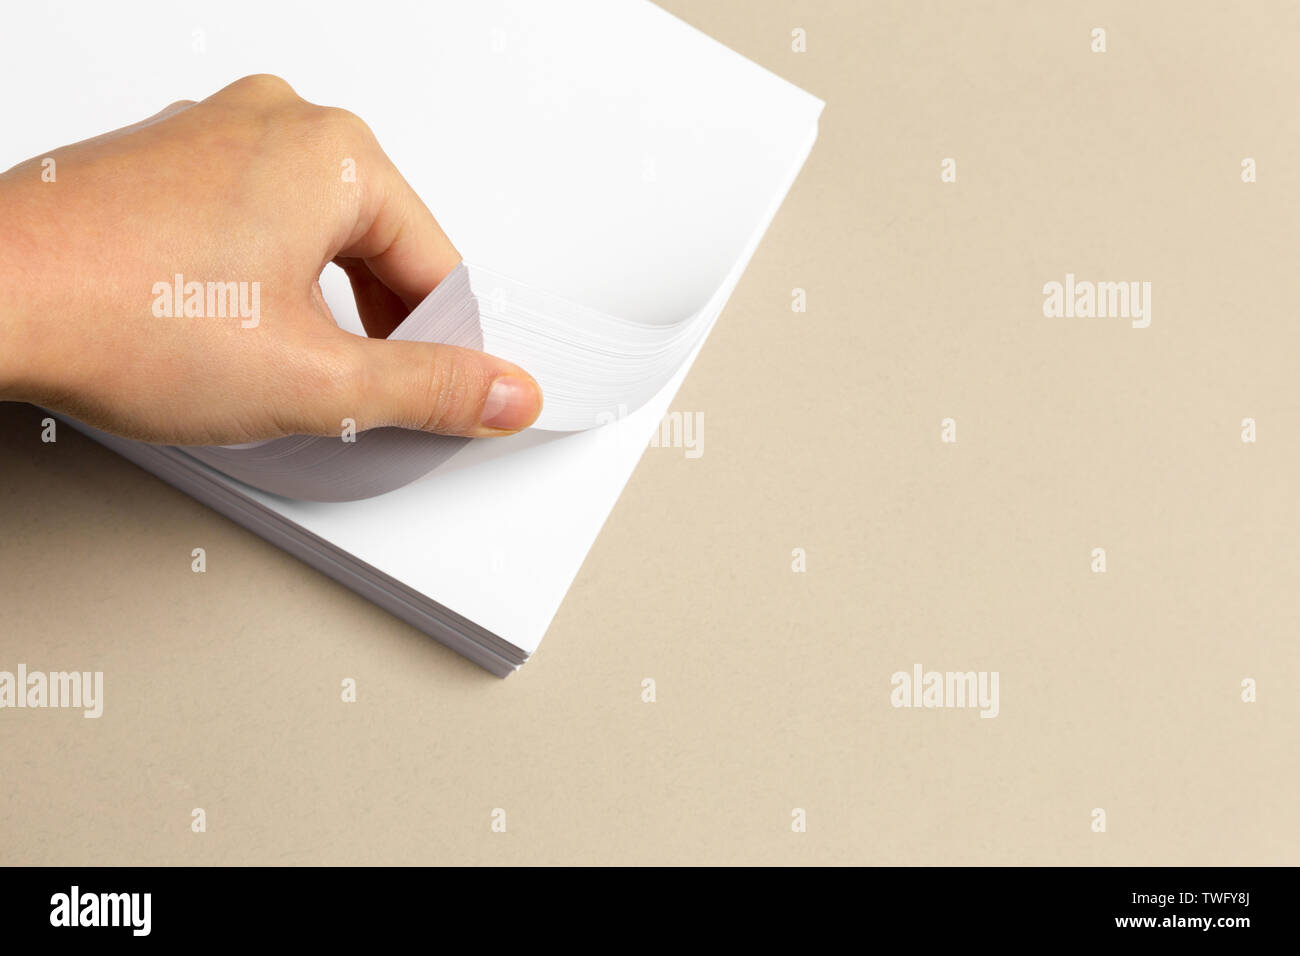 Blank paper on wood table - Stock Image